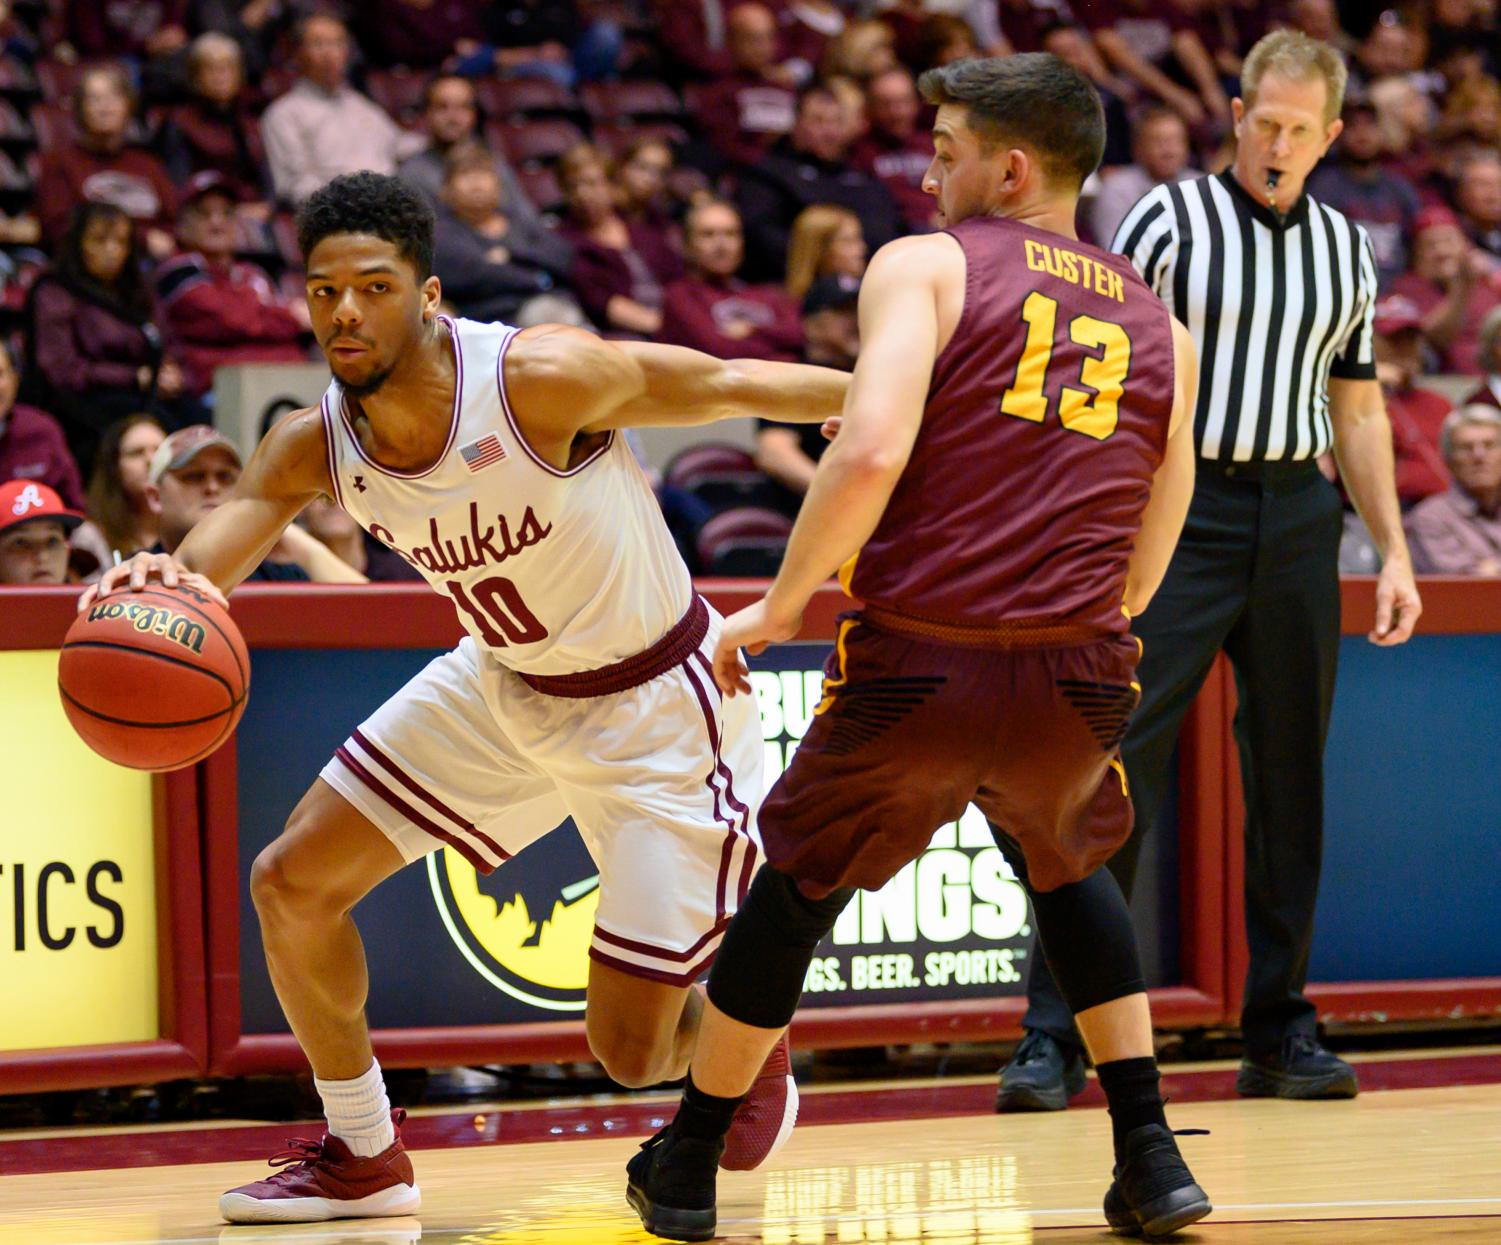 Southern Illinois Salukis guard Aaron Cook attempts to get around Loyola Ramblers guard Clayton Custer on Sunday, Feb. 24, 2019, during a matchup between the Southern Illinois Salukis and the Loyola Ramblers at SIU Arena.